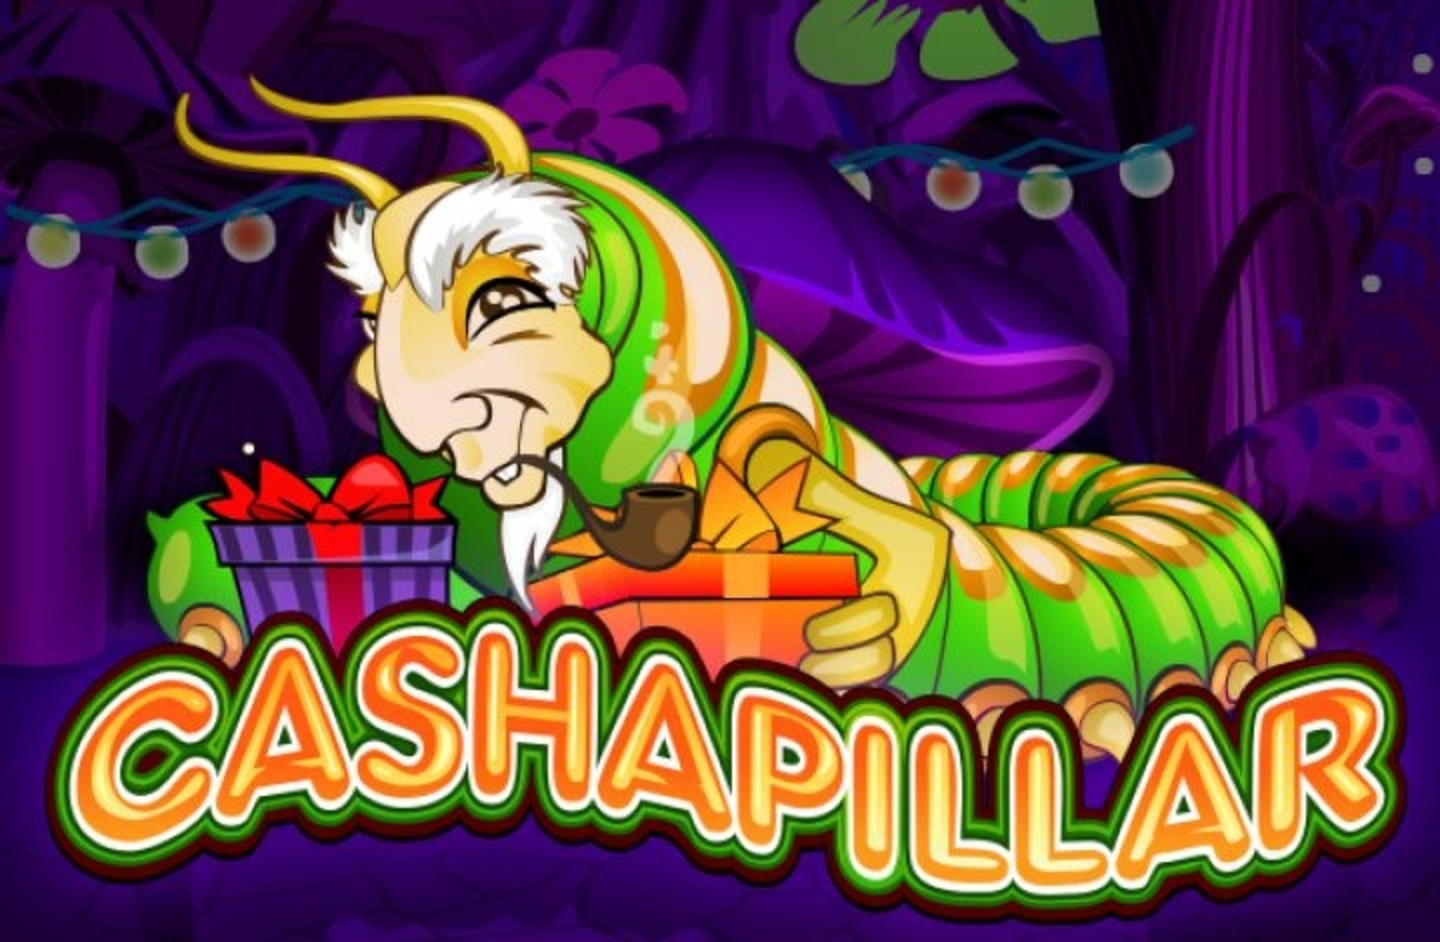 Cashapillar Online Slot Demo Game by Microgaming